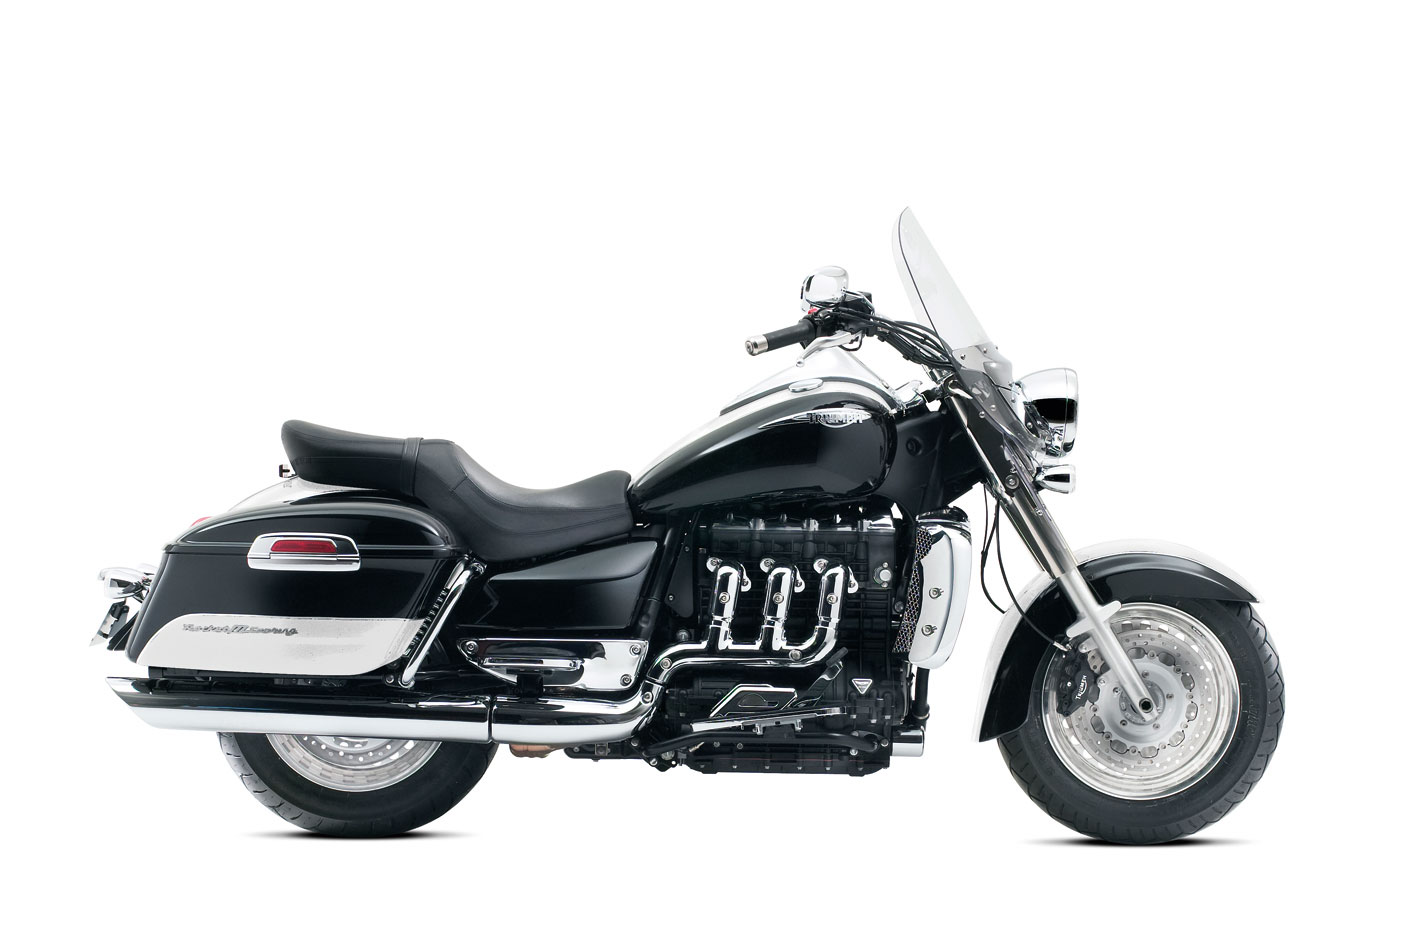 2012 triumph rocket iii rocket 3 touring abs review. Black Bedroom Furniture Sets. Home Design Ideas